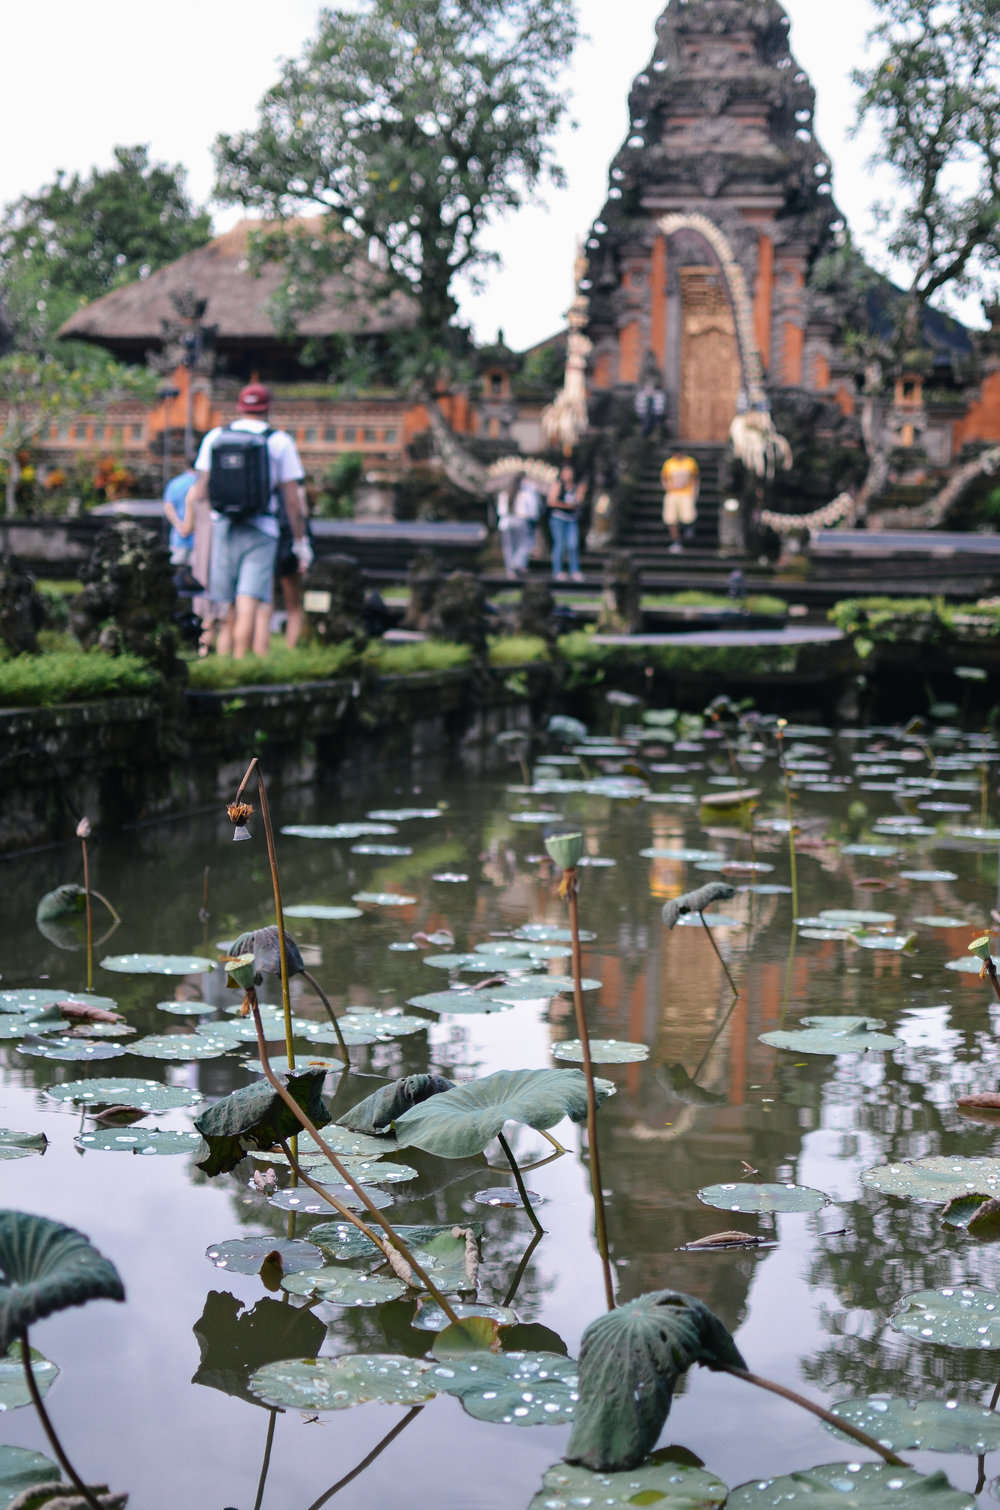 ubud+travel+guide+bali+life+on+pine_DSC_2544.jpg